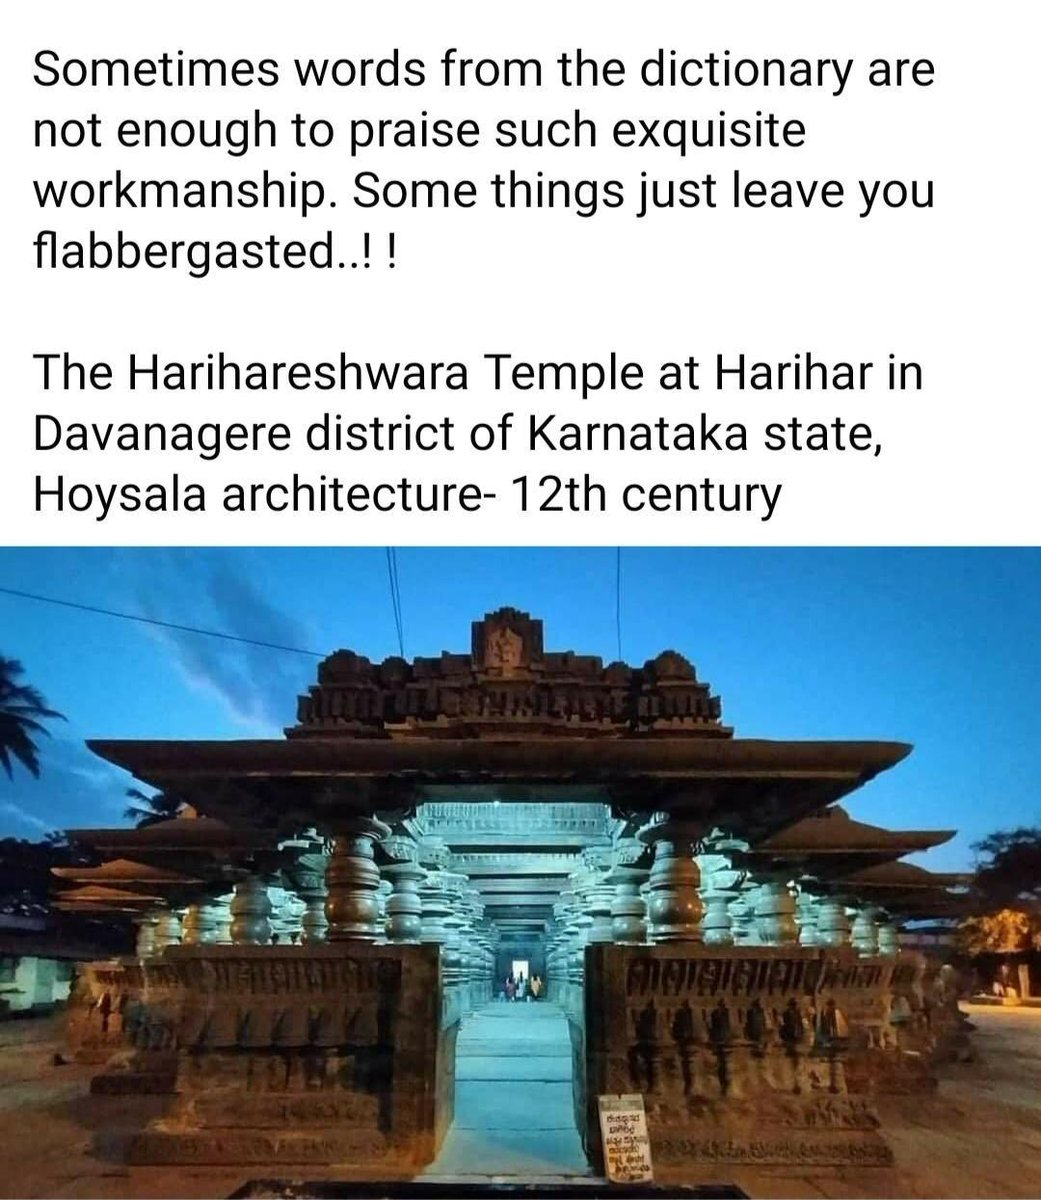 #Harihara It's beautiful temple near my place https://t.co/2VOX0cOuoF